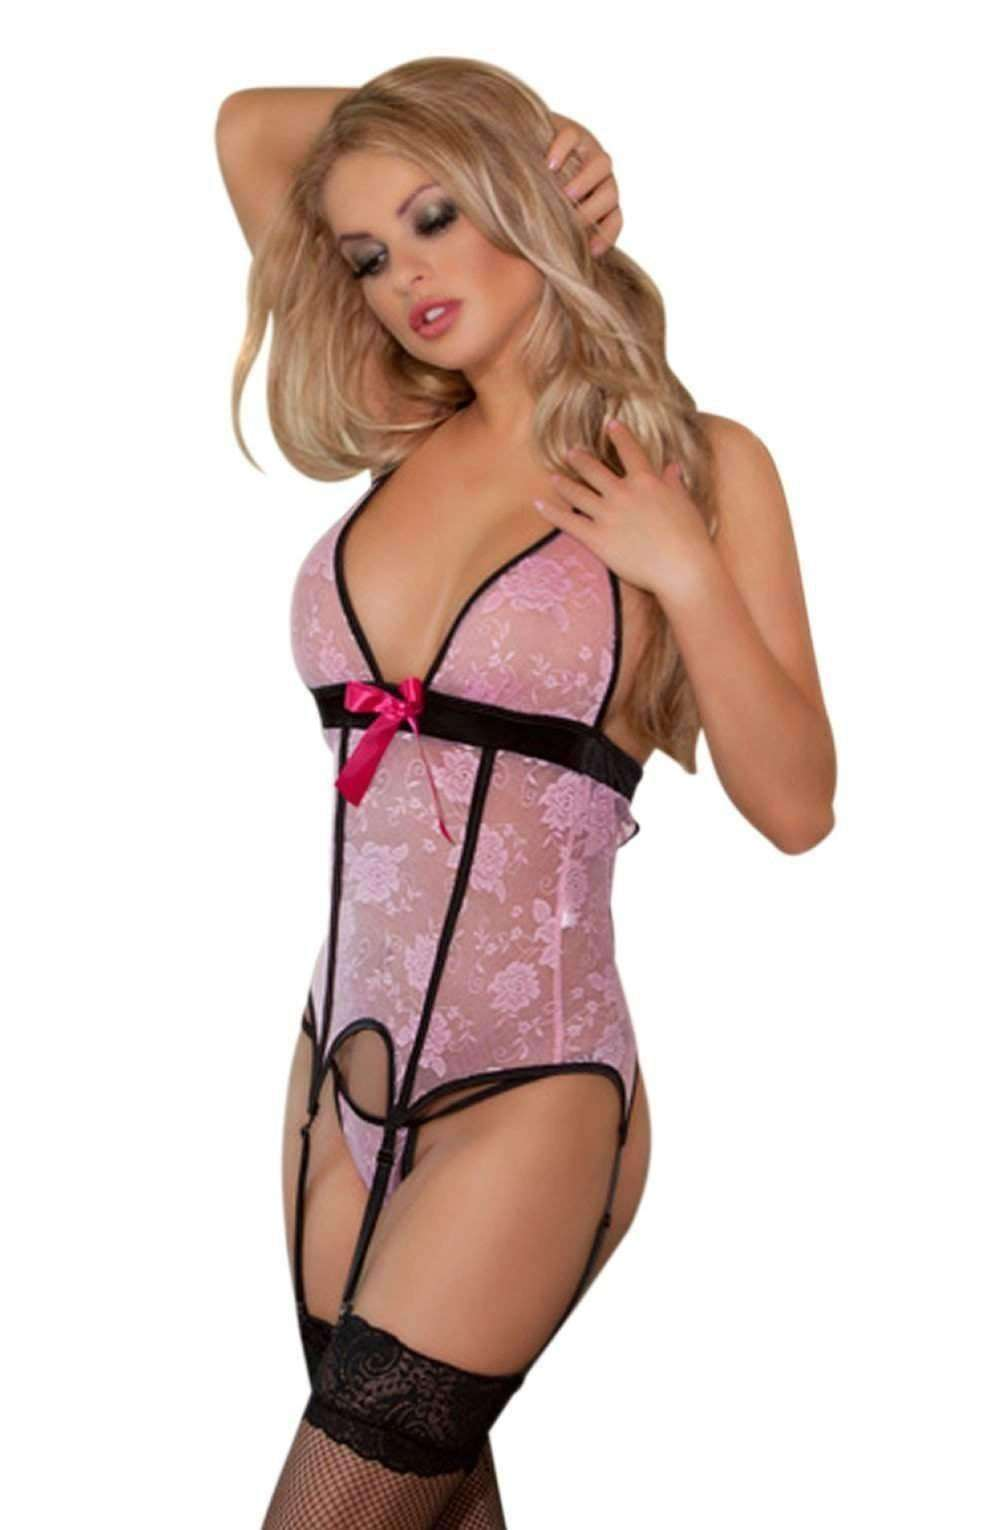 YX909 Corset Set in Pink/Rose by YesX - YesX - Katys Boutique Lingerie USA